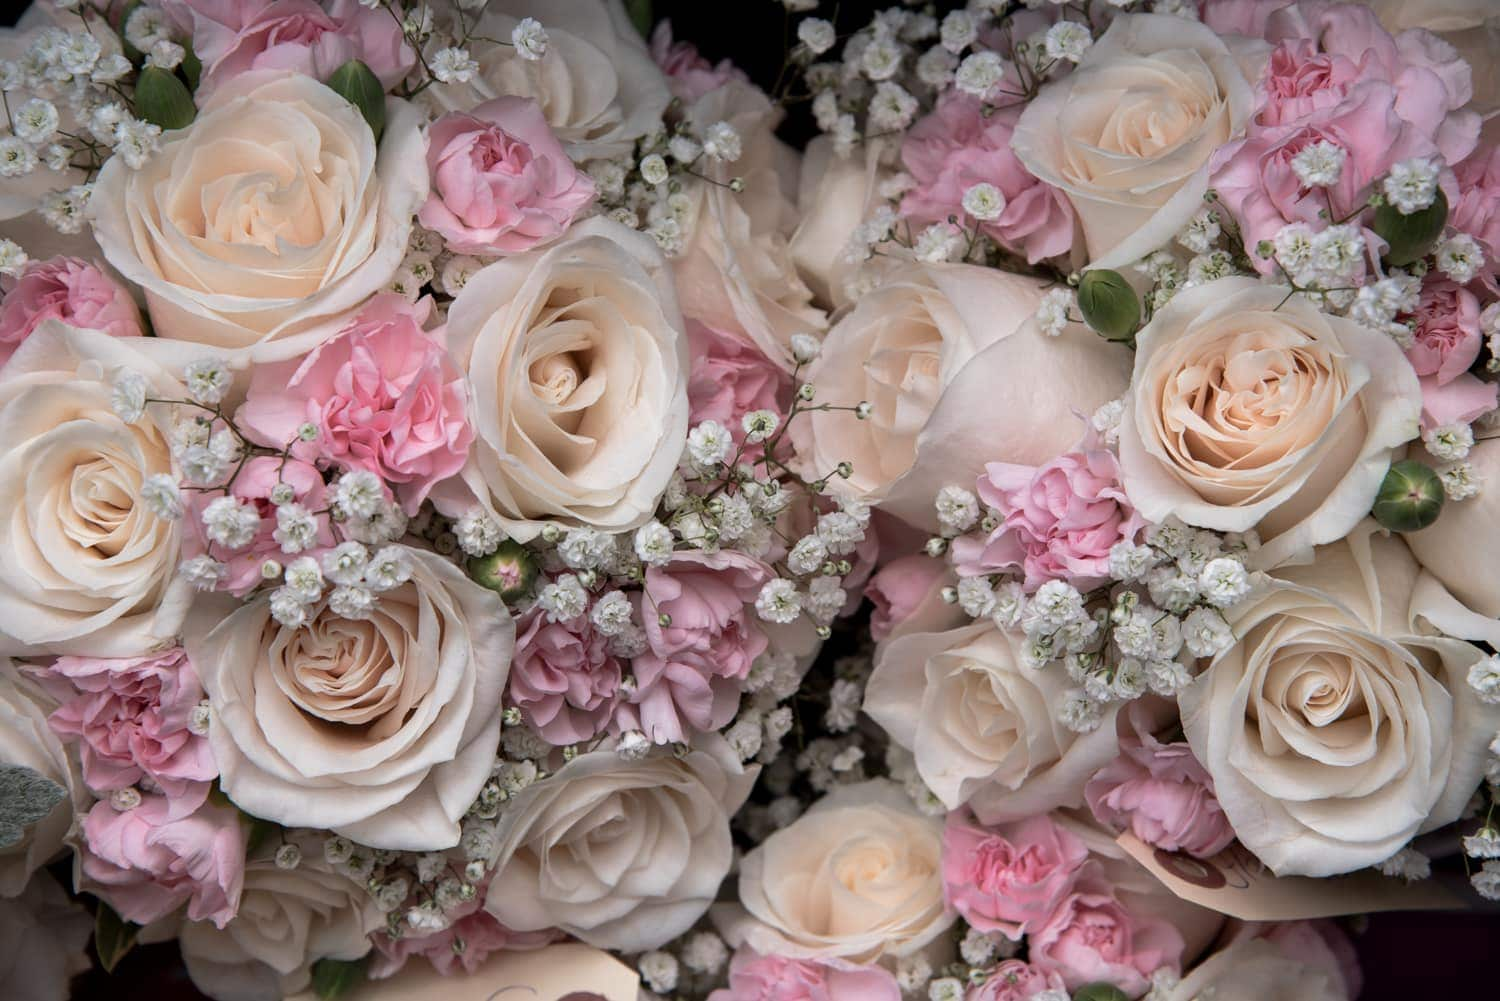 A wedding bridal bouquet of ivory and pale pink roses.